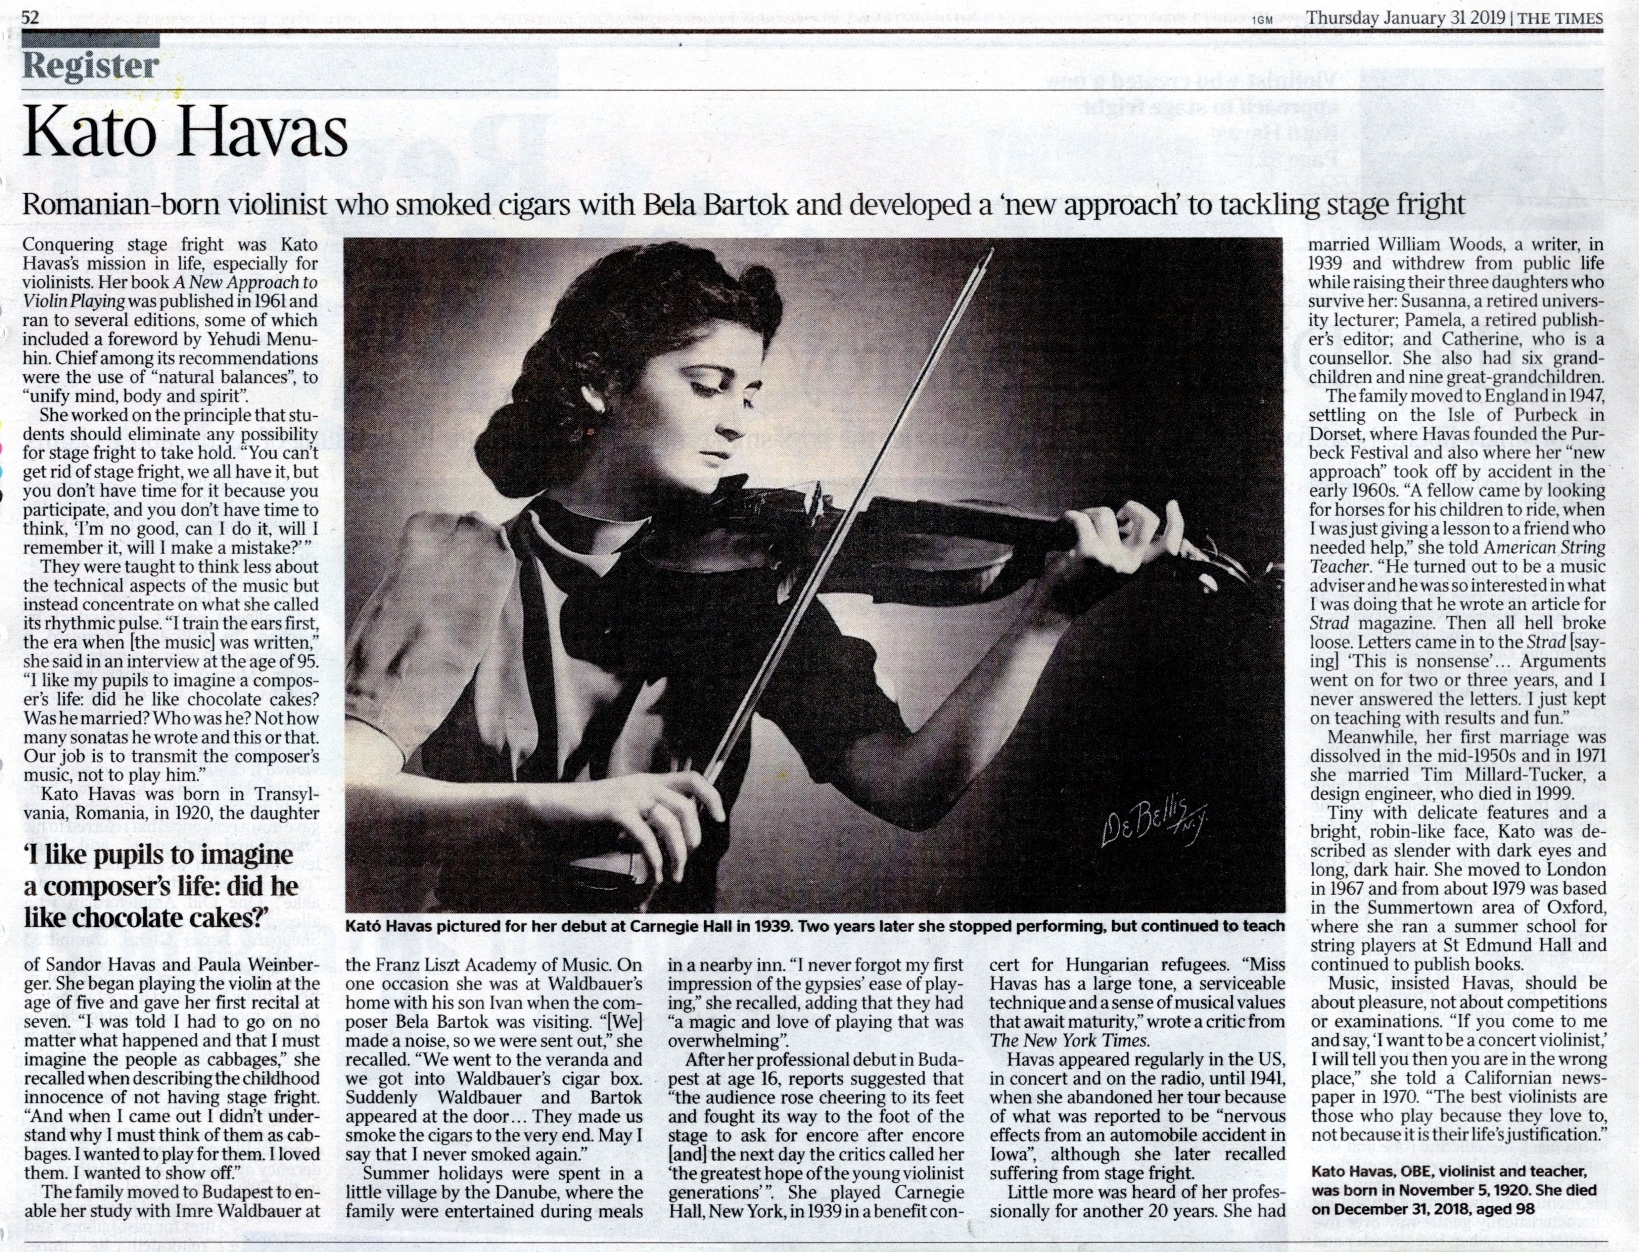 Kato Havas Obituary appeared on The Times, 31 January 2019. Violinist who smoked cigars with Bela Bartok and developed a 'new approach' to tackling stage fright